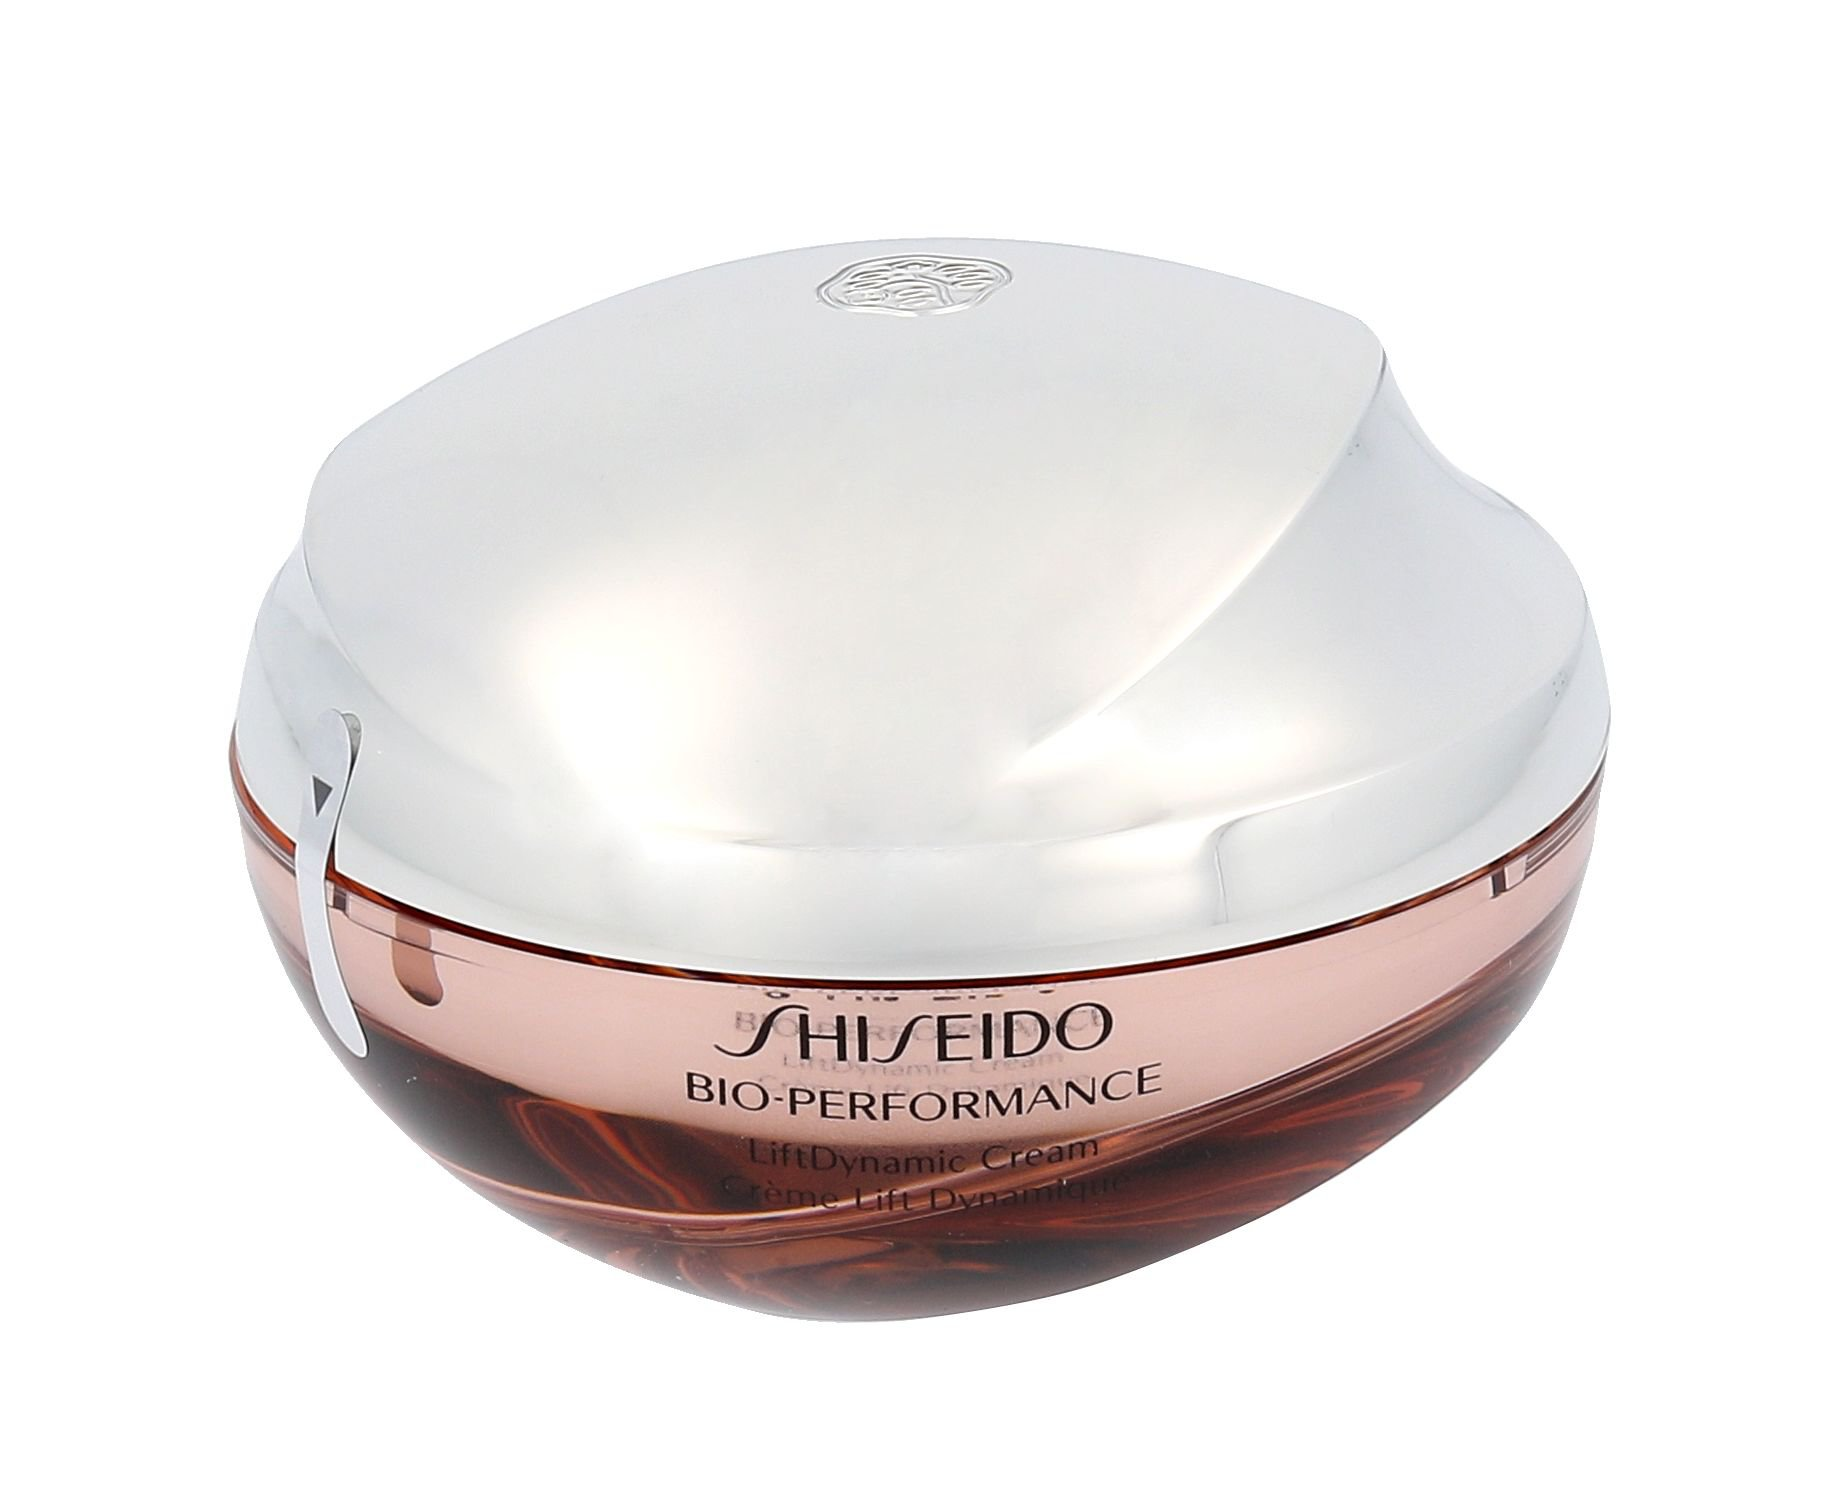 Shiseido Bio-Performance LiftDynamic Cream, Denný arcápoló cream 50ml